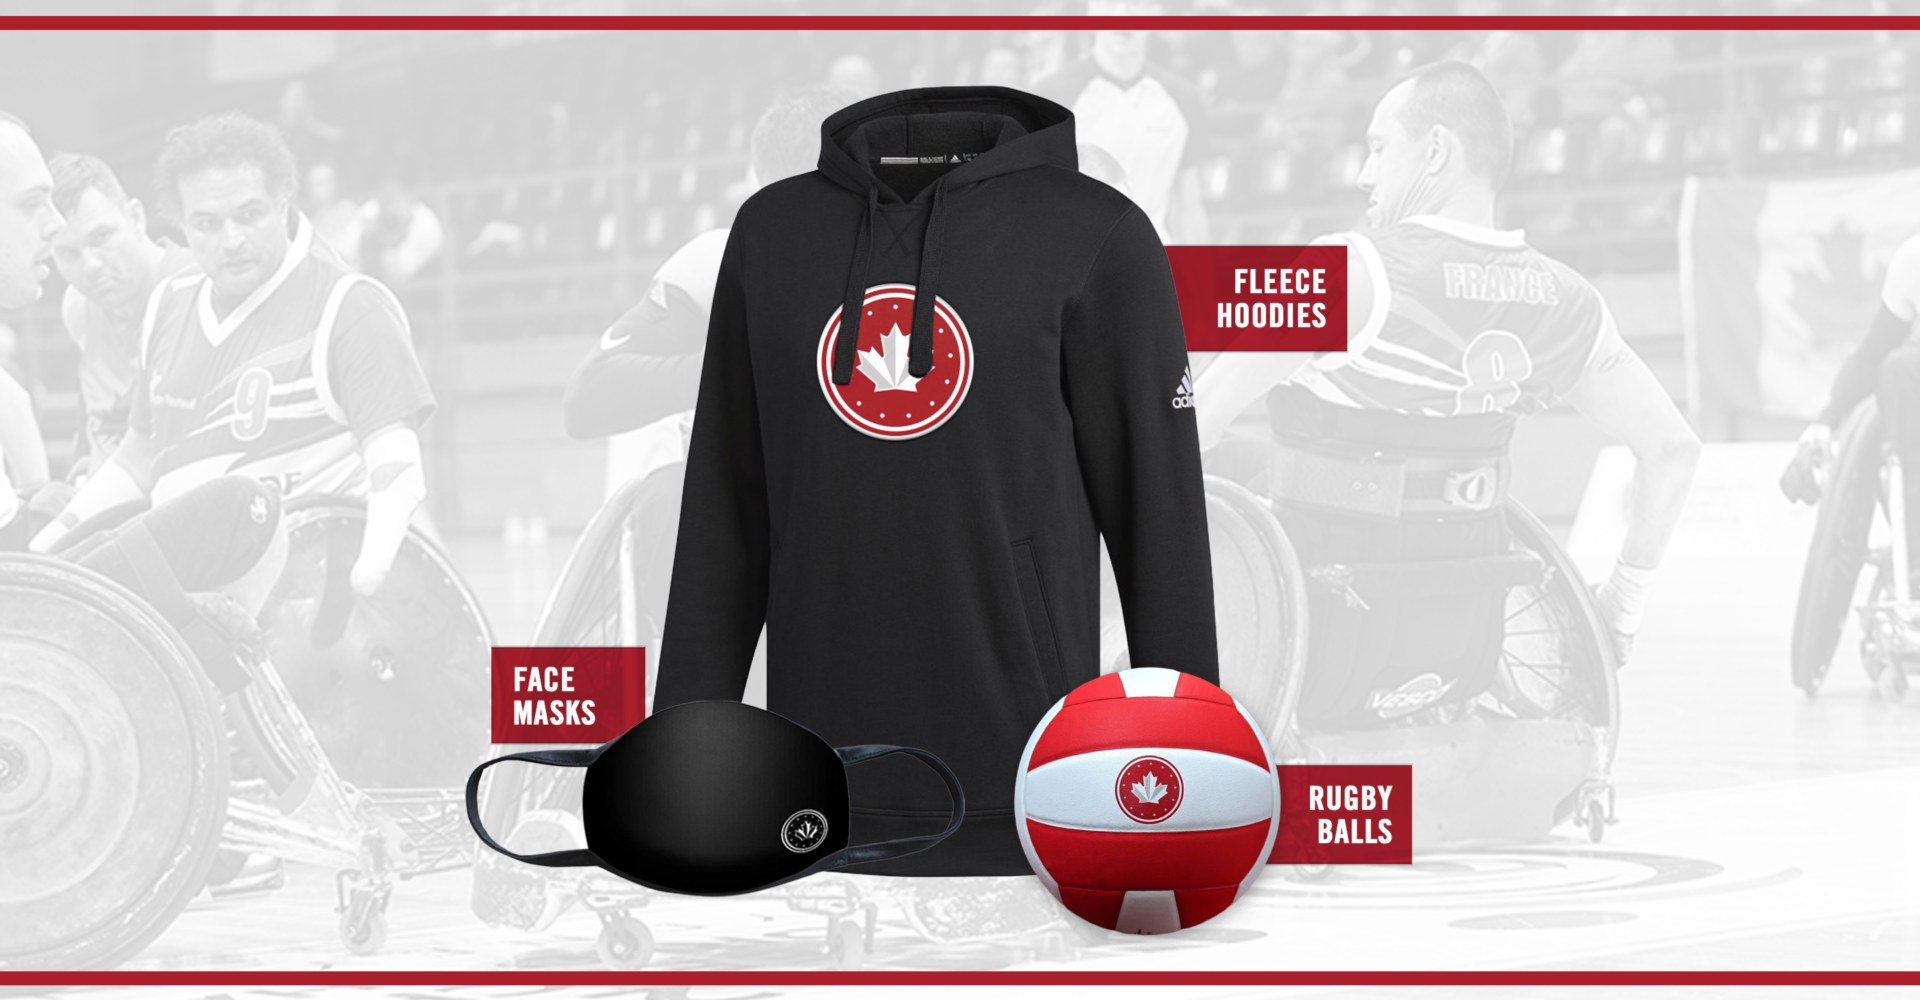 WHEELCHAIR RUGBY CANADA LAUNCHES NEW ONLINE STORE